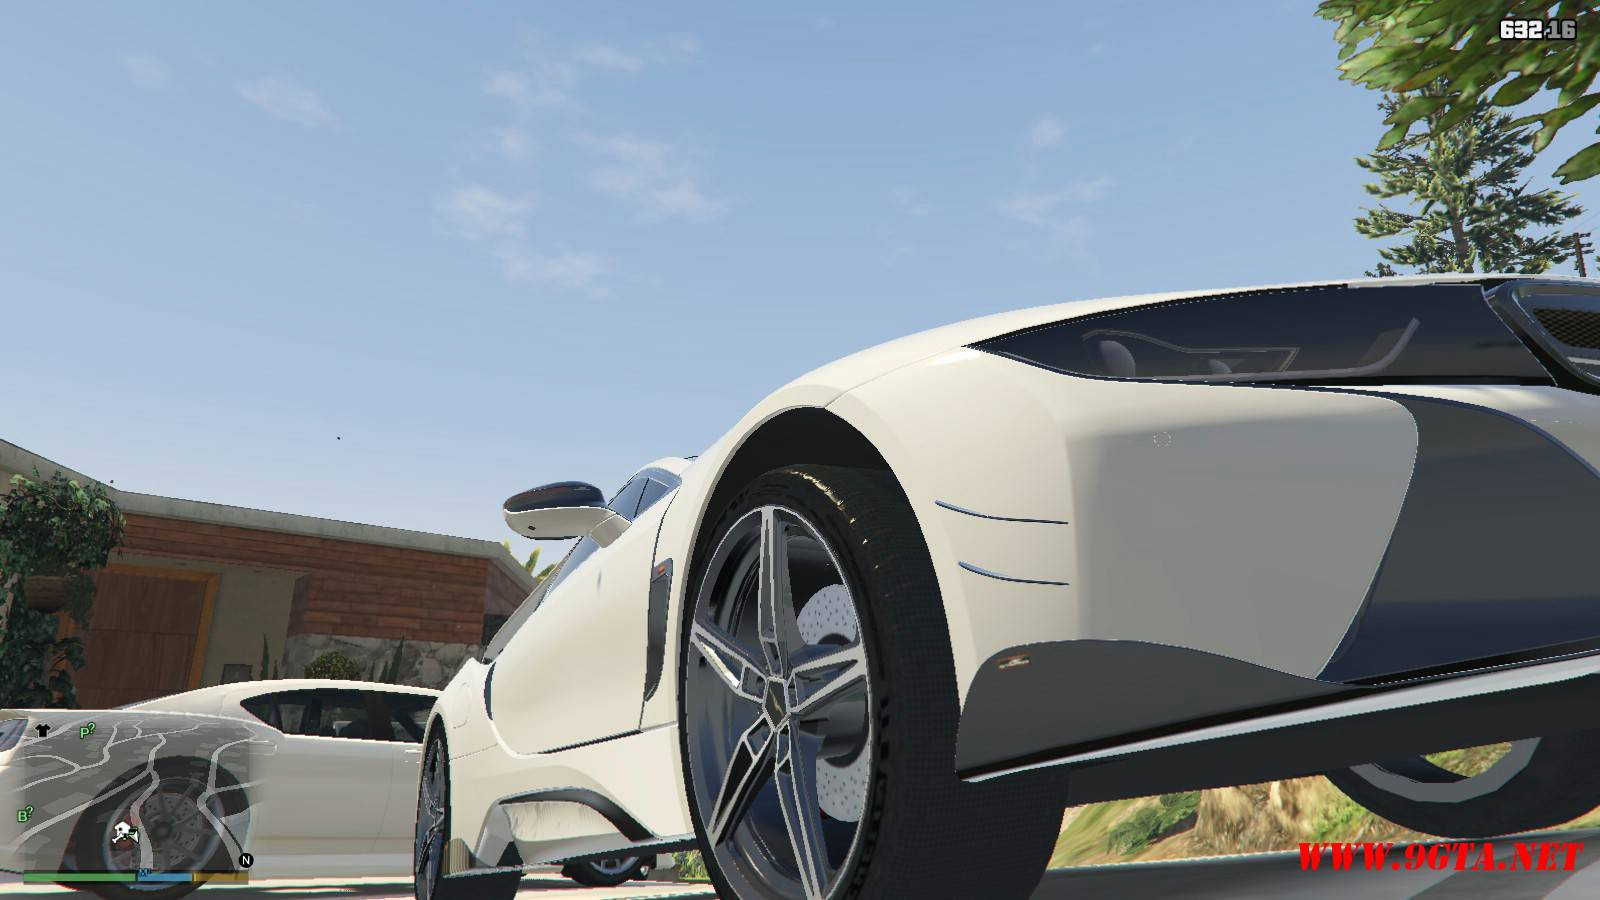 BMW i8 AC Schinitzer ACS8 Mod For GTA5 (8)